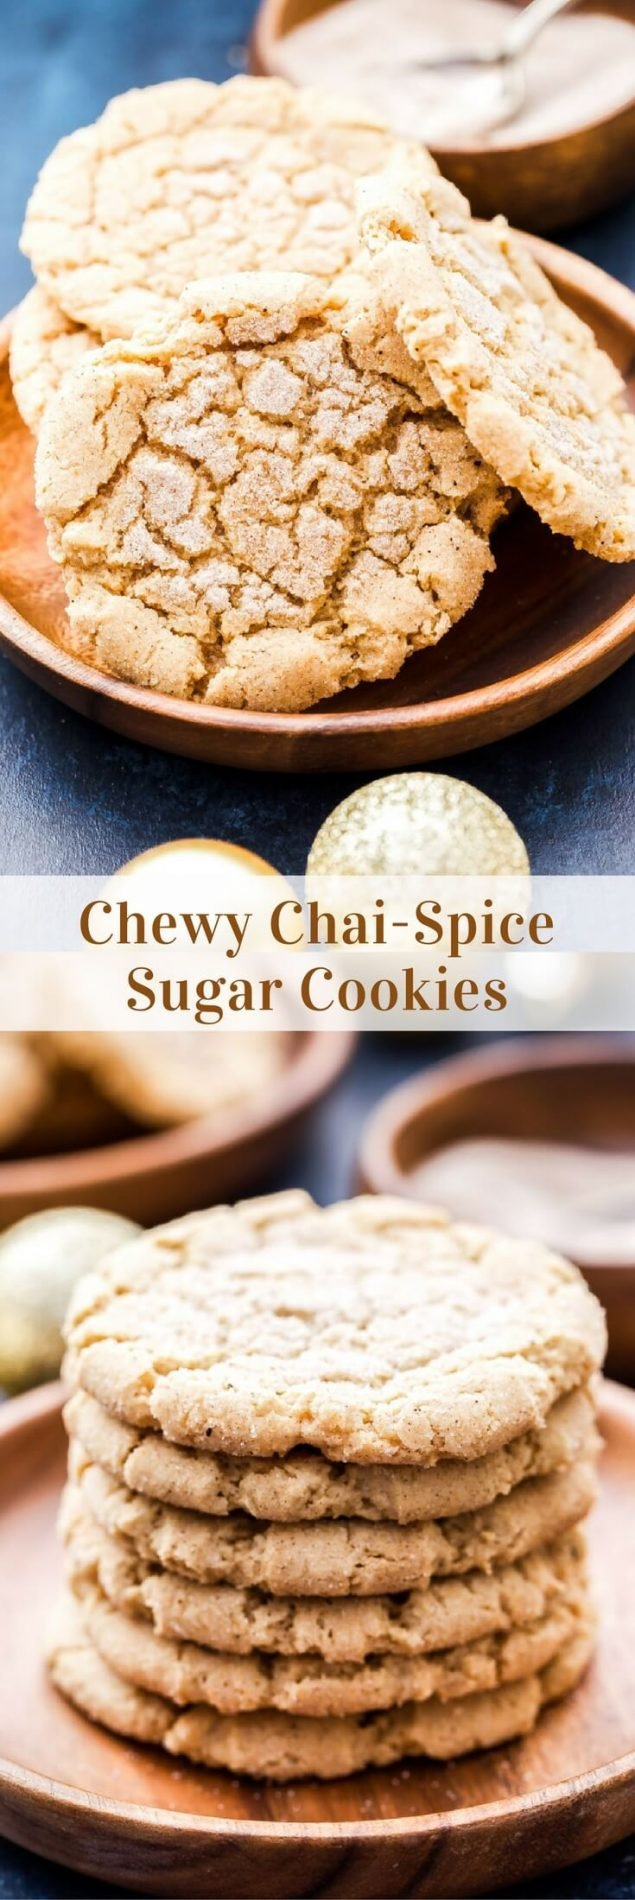 Chewy sugar cookies all dressed up for the holidays! Crisp edges, soft and chewy in the middle and plenty of chai-spice. These Chewy Chai-Spice Sugar Cookies are perfection! #cookies #christmascookies #chai #sugarcookies